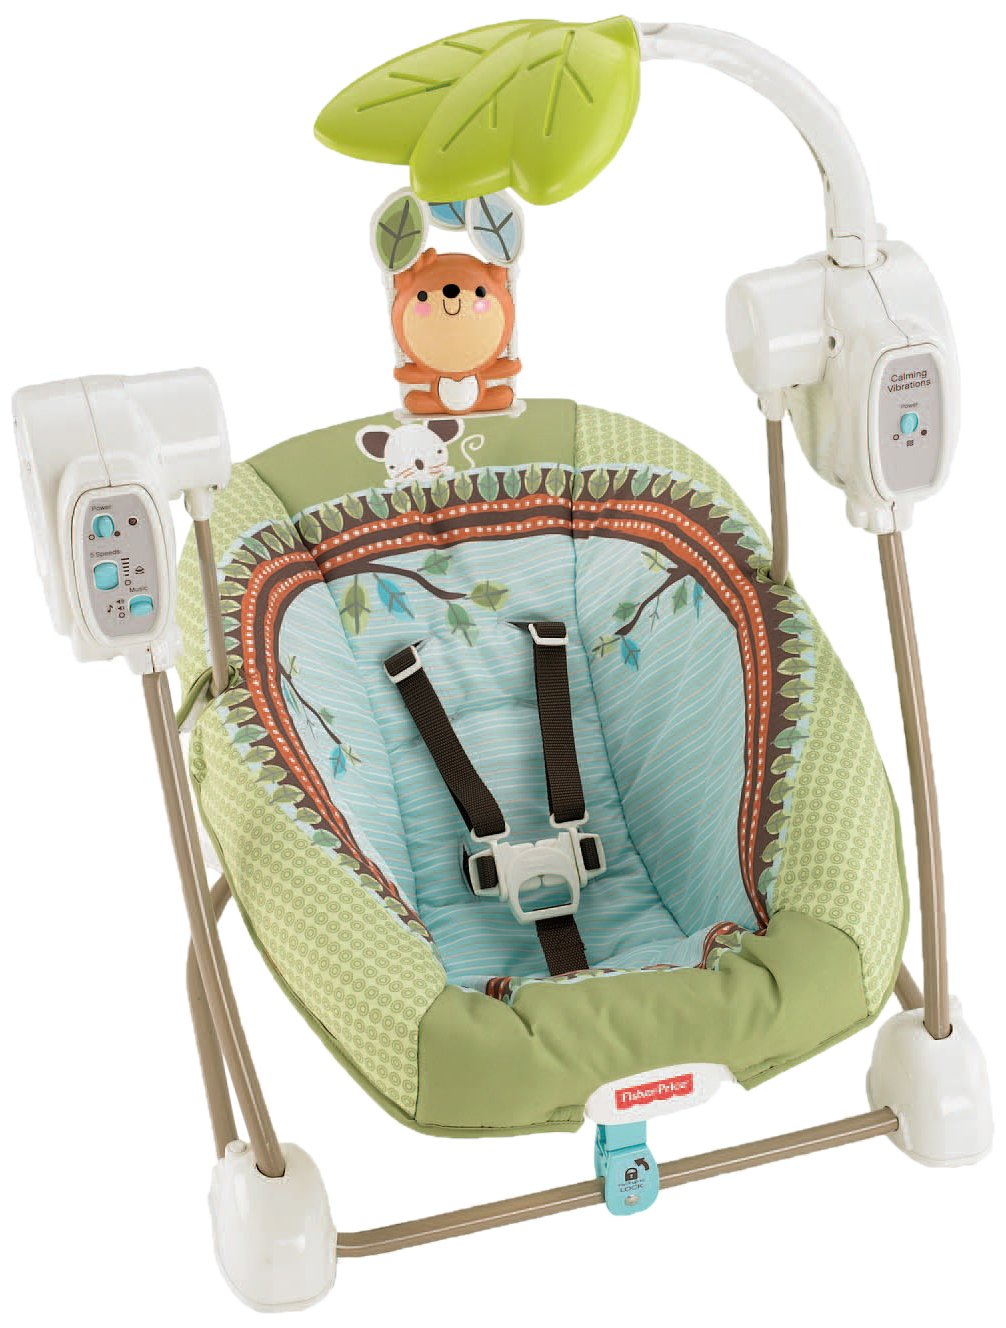 Fisher-Price SpaceSaver Swing and Seat, Forest Fun (Discontinued by Manufacturer) BBD08